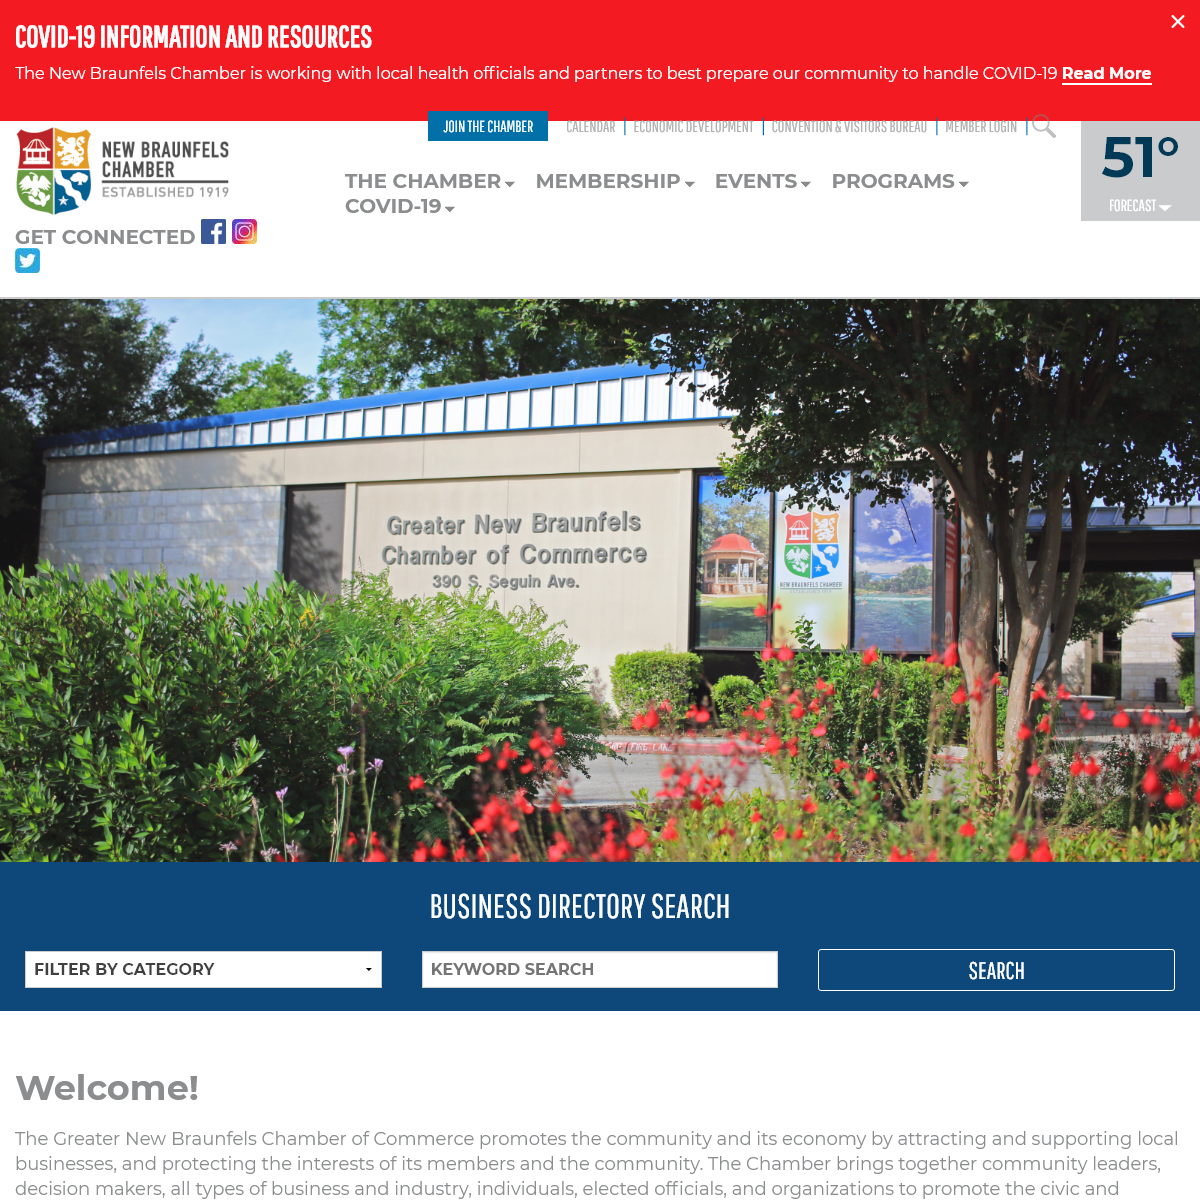 Official site for New Braunfels Chamber of Commerce